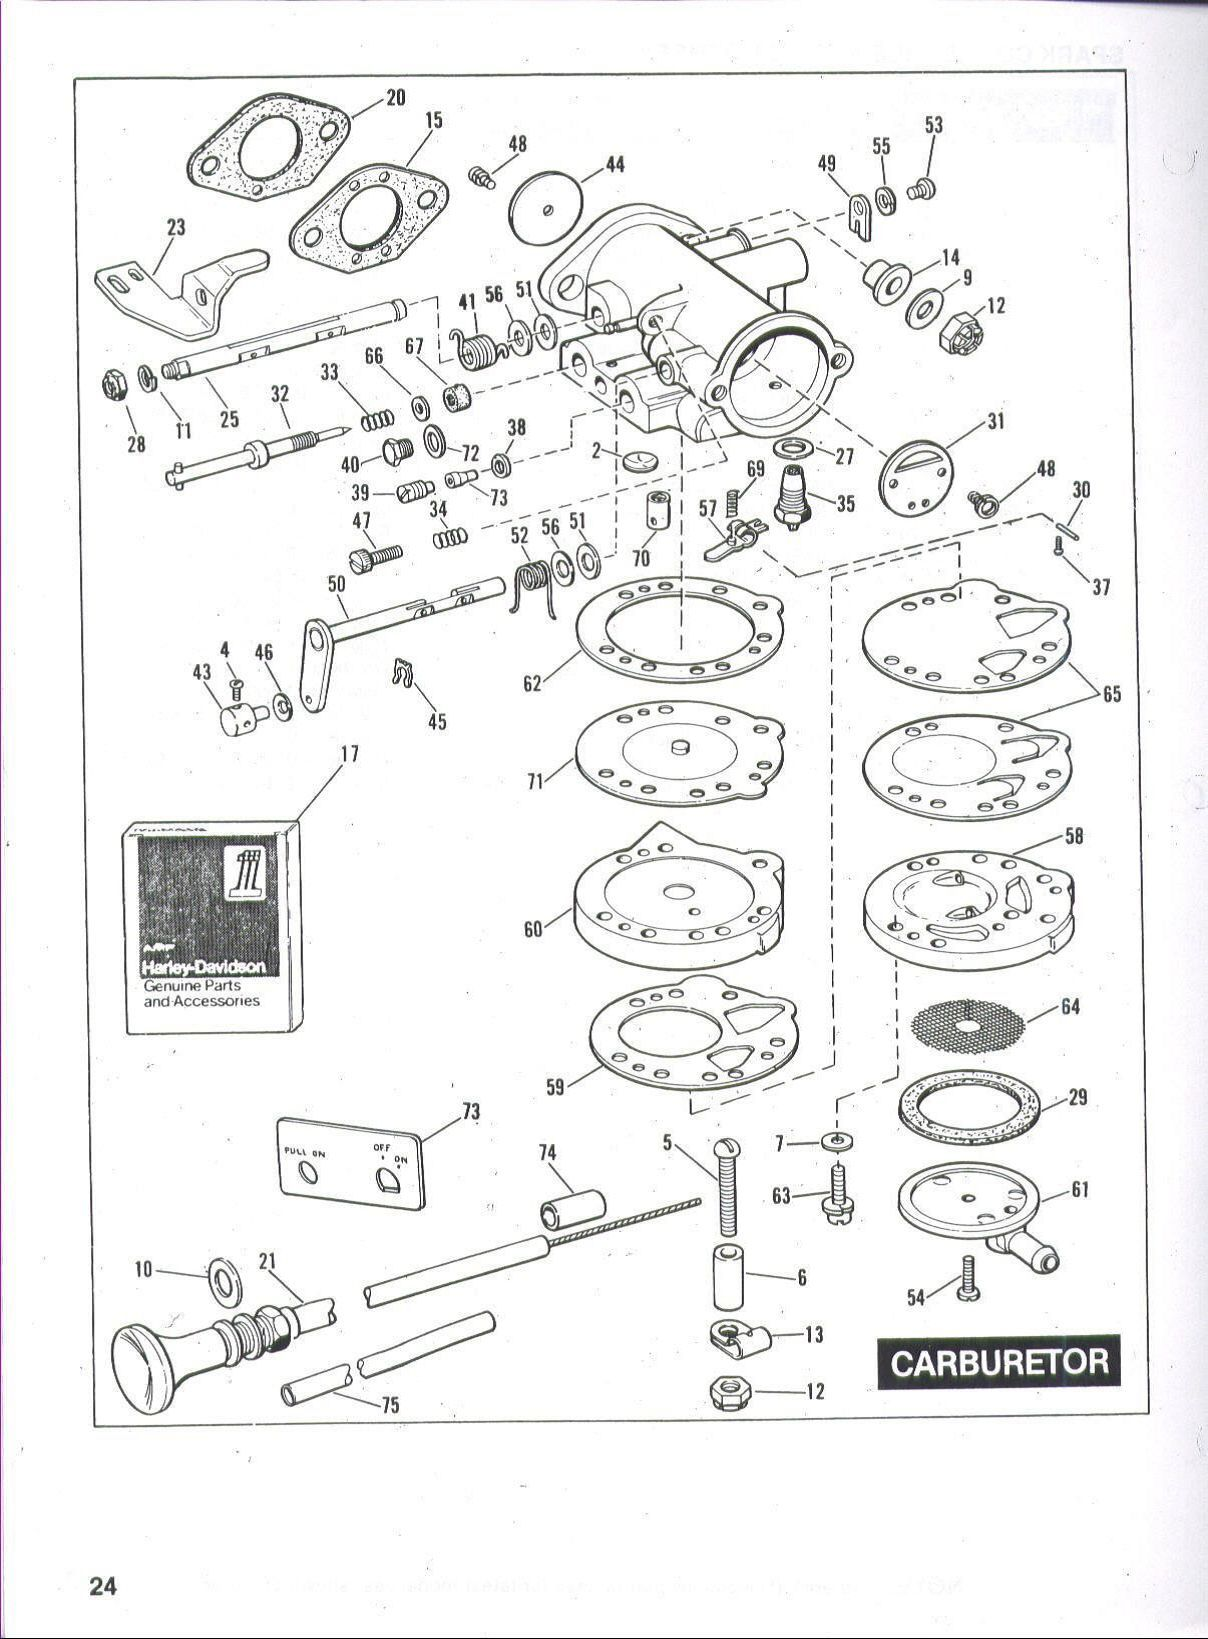 Harley      Davidson    Golf Cart Carburetor    Diagram      UTV stuff